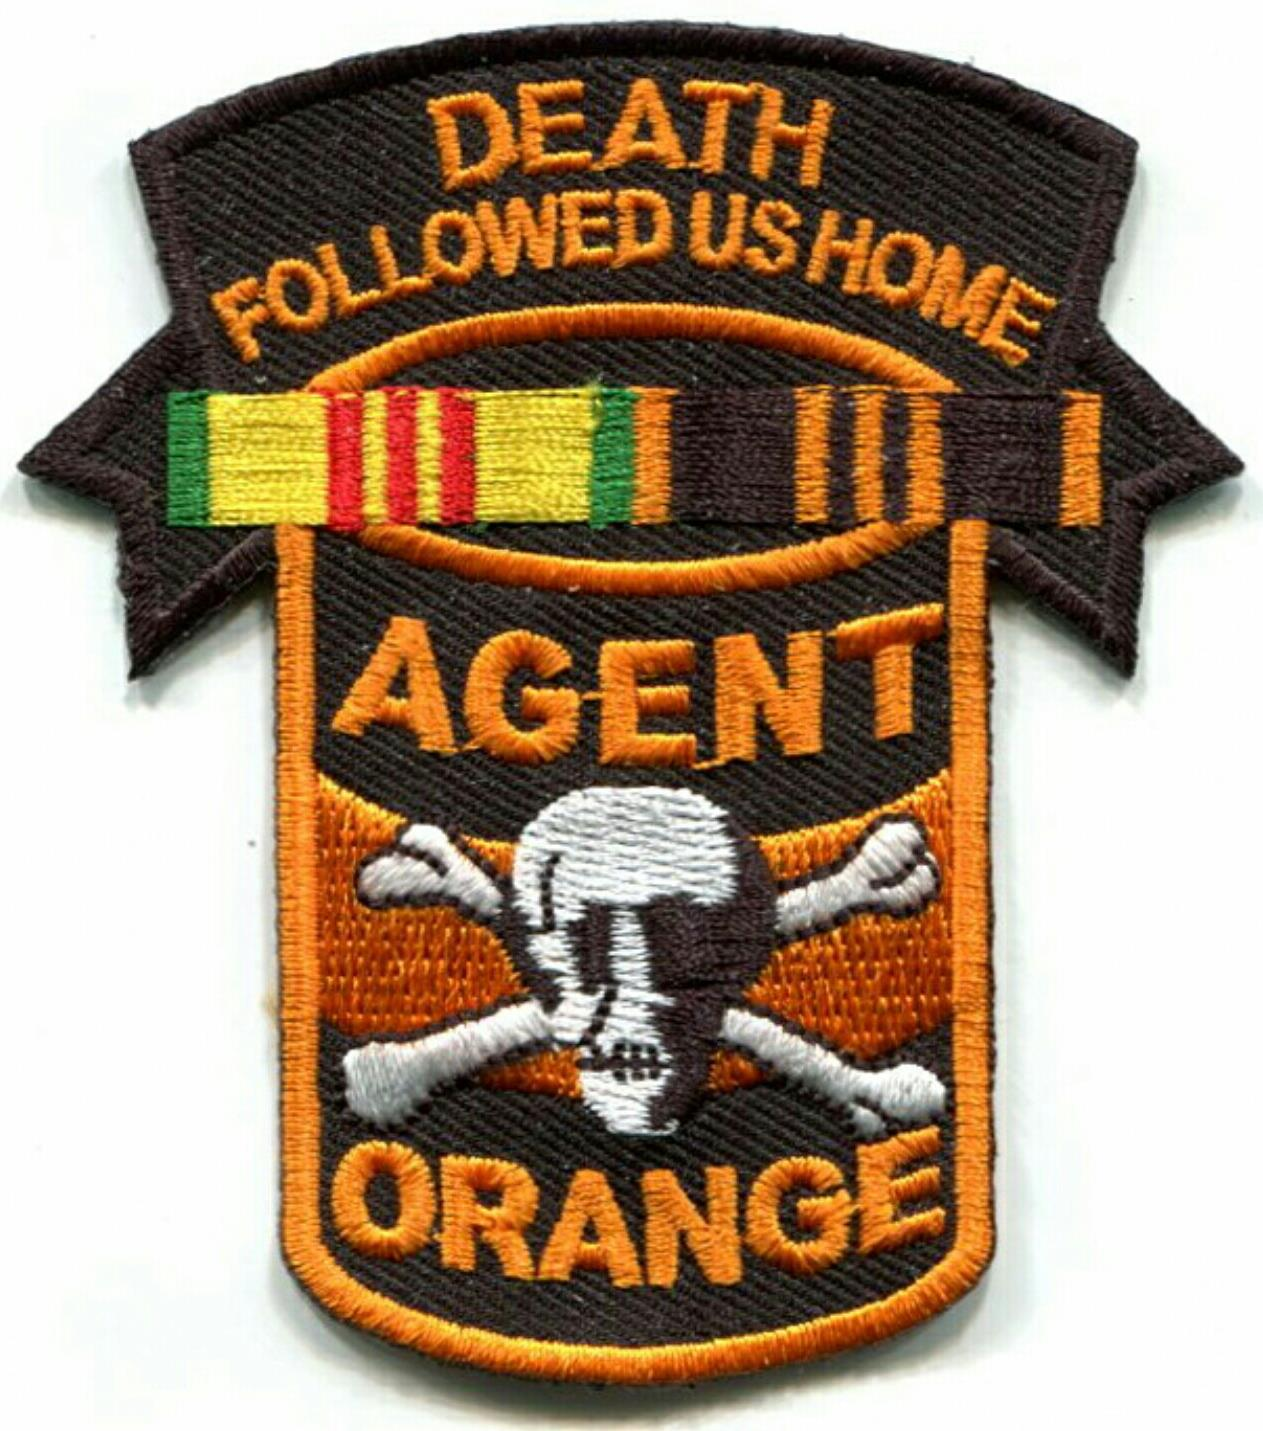 DEATH FOLLOWED US HOME PATCHES